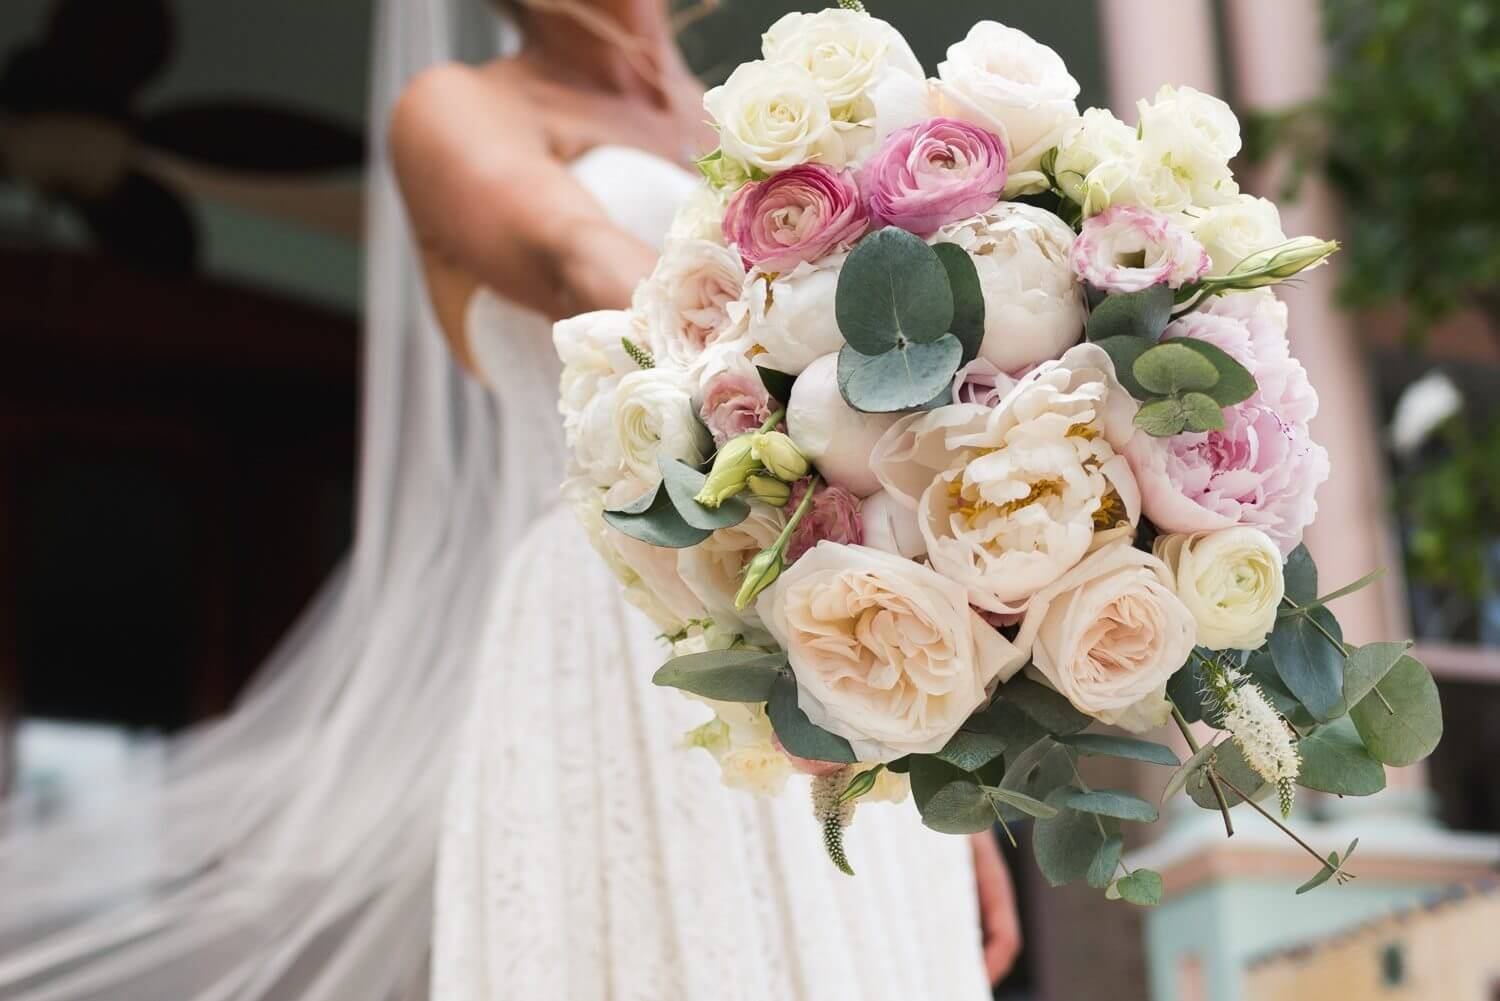 Freas Photography Southernmost House Wedding 64 - Boho Styled Key West Wedding at the Southernmost House in Key West, Florida